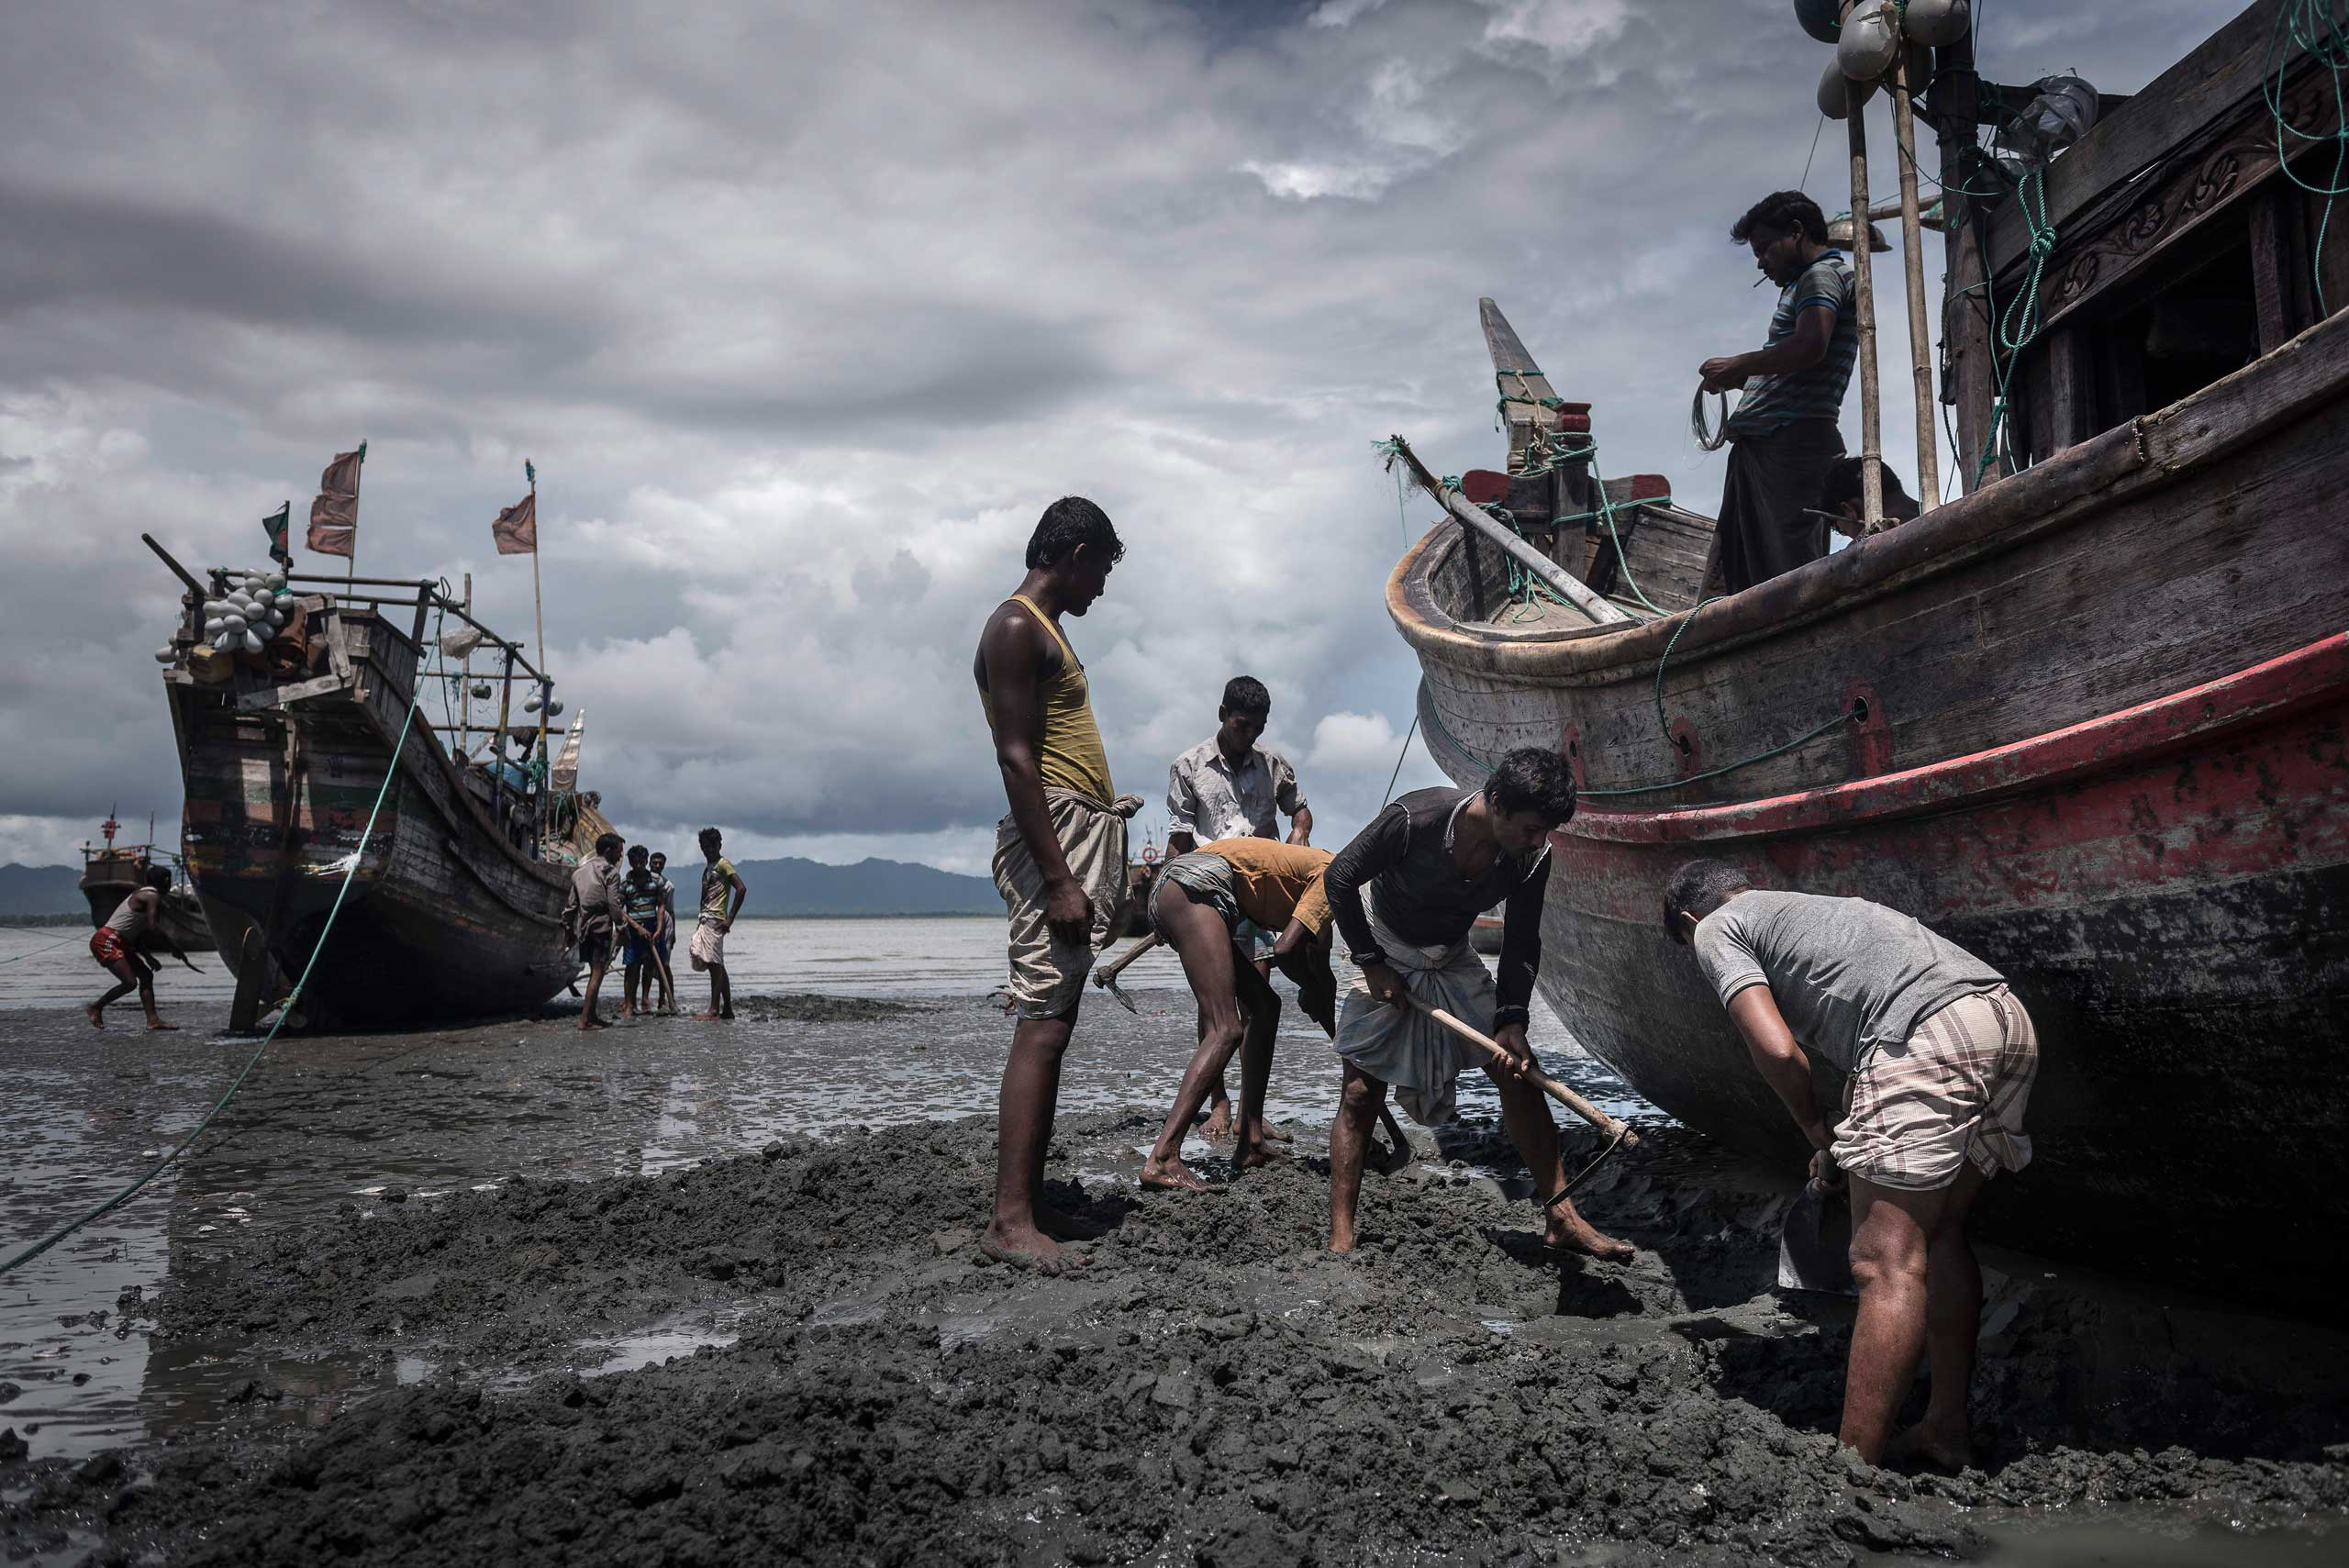 The New York Times: A Bangladeshi Town in                               Human Trafficking's Grip                               Fishermen dig their boats from the mud while awaiting a high tide in Shah Porir Dwip, Bangladesh, on June 17, 2015.